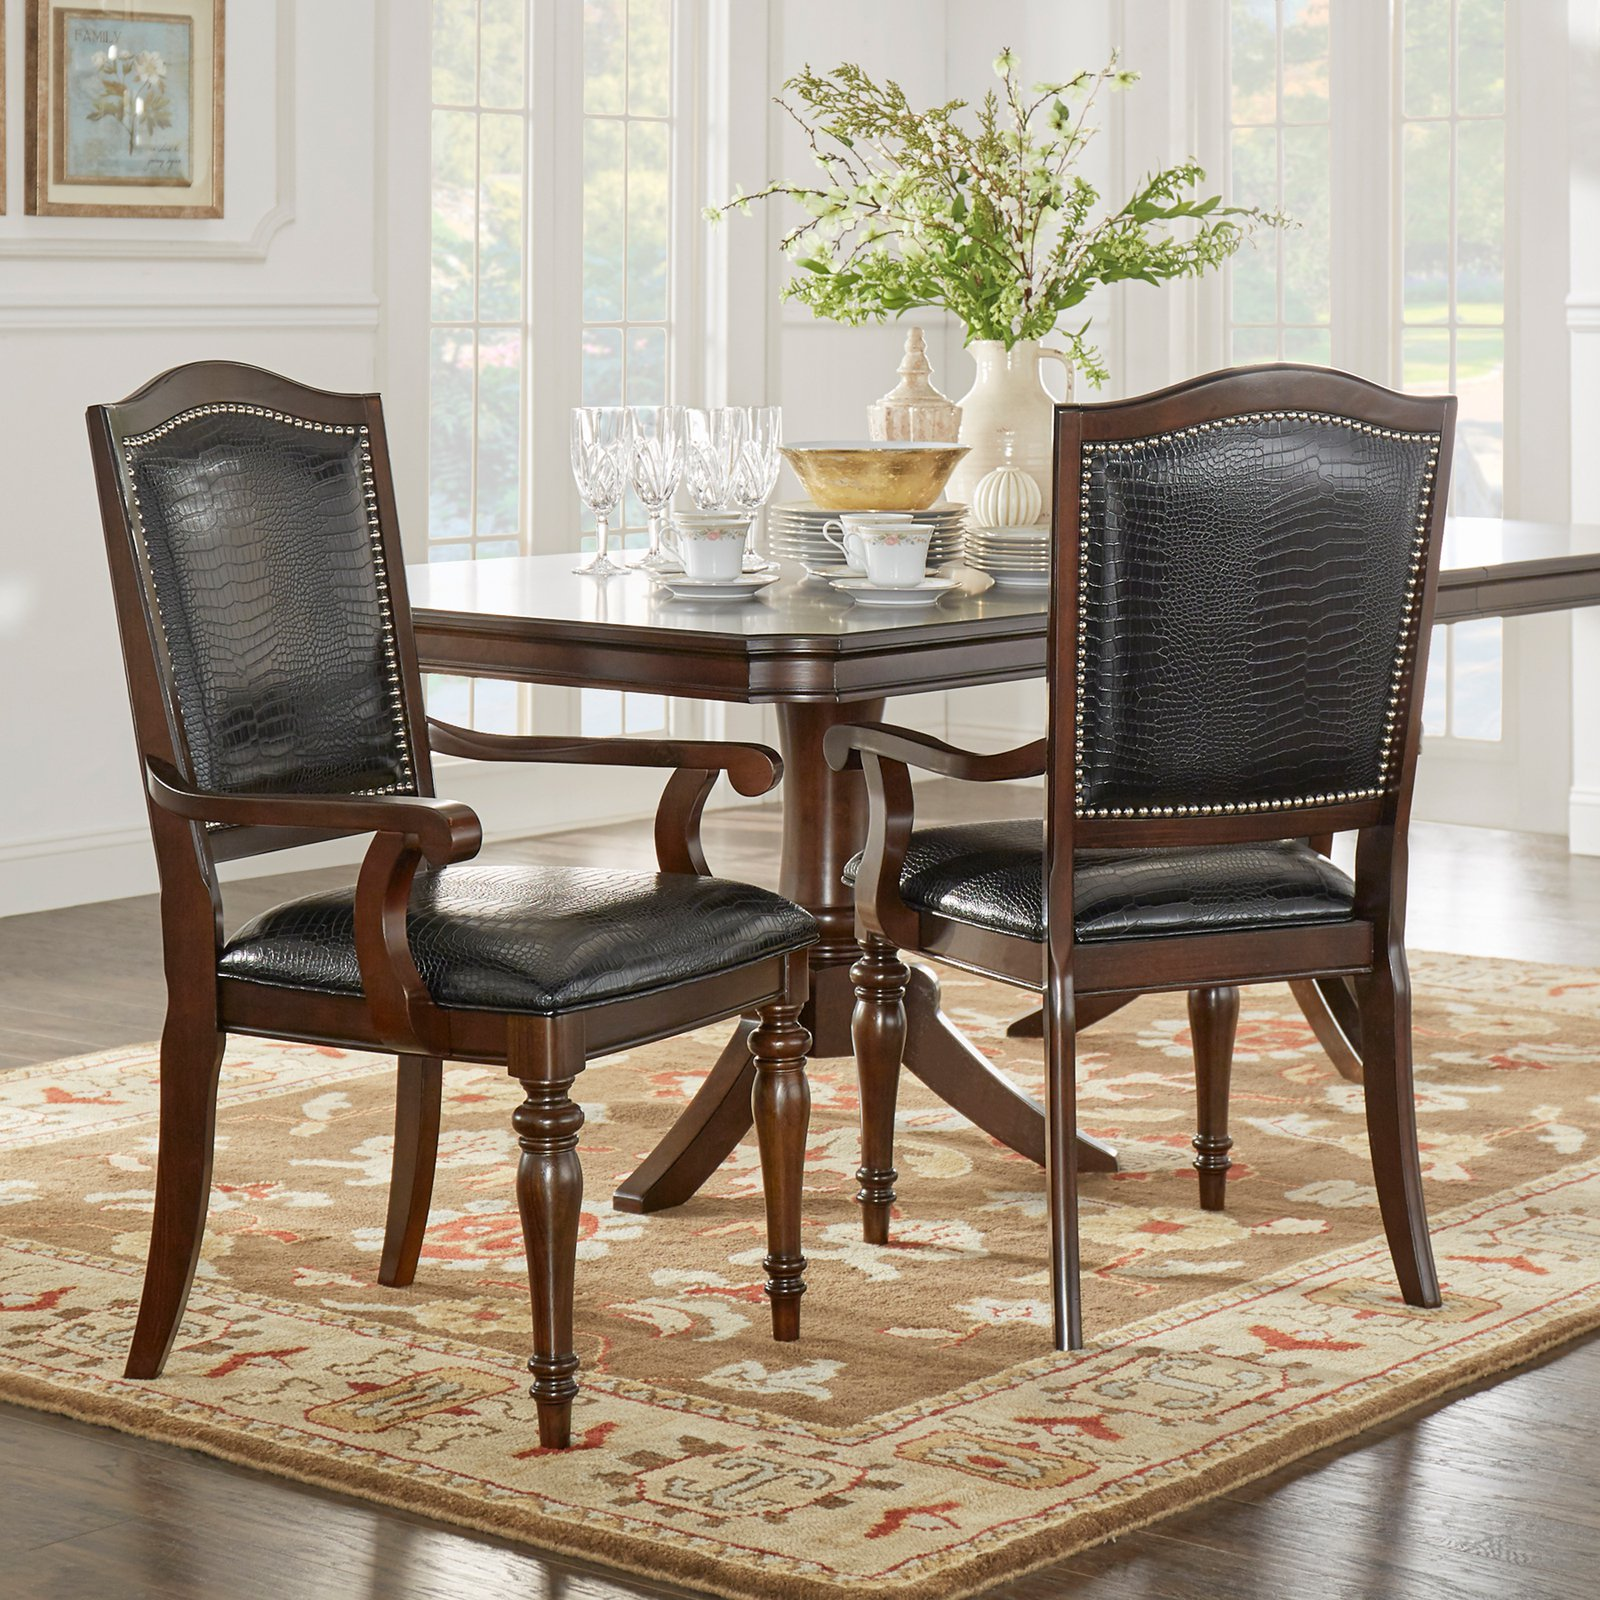 Homelegance Marston Alligator Faux Leather Nailhead Dining Armchair Set of 2 by Top-Line dba Homelegance